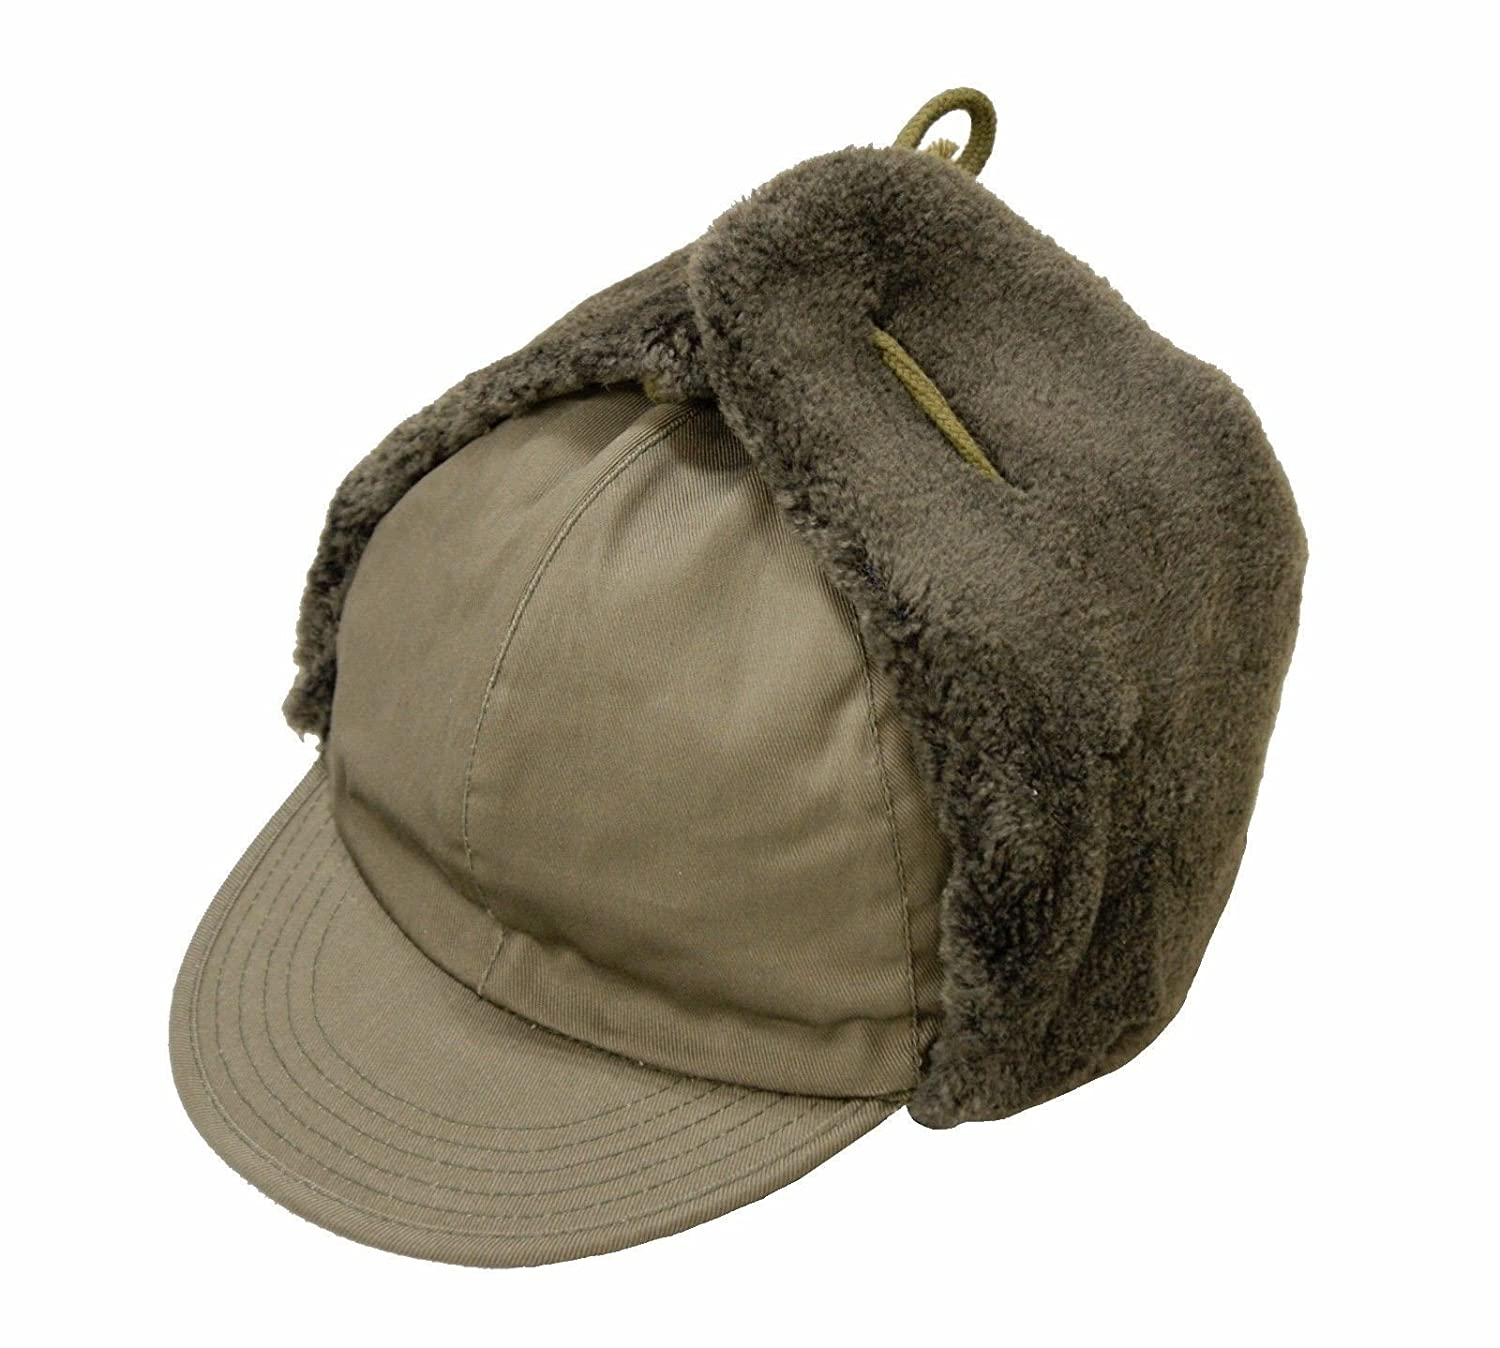 a4cab6f2b4c Cobmaster Brand New Warm Military Army Trapper Hat Foreign Legion Cold  Weather Winter Cap  Amazon.co.uk  Clothing